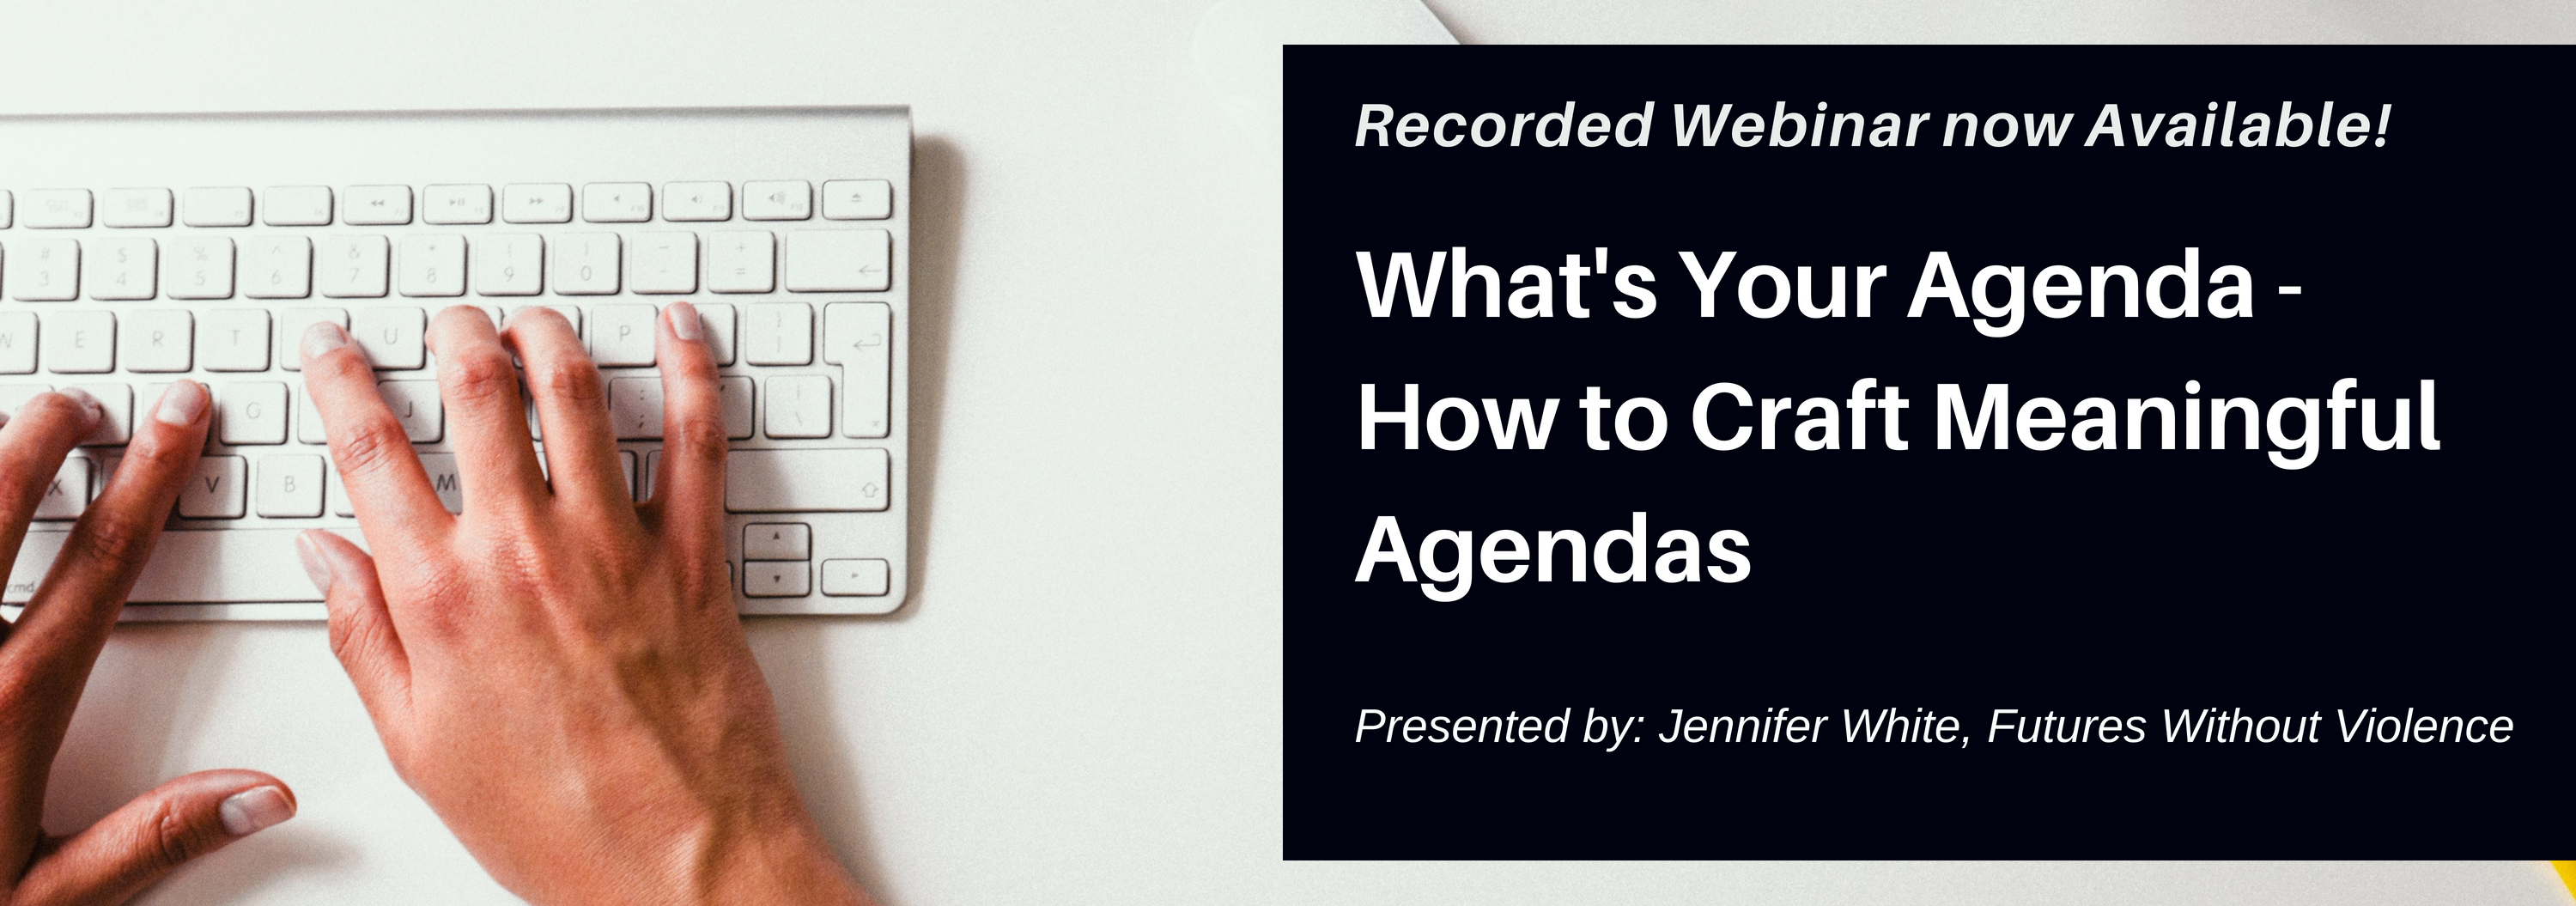 Whats Your Agenda - How to Craft Meaningful Agendas Webinar